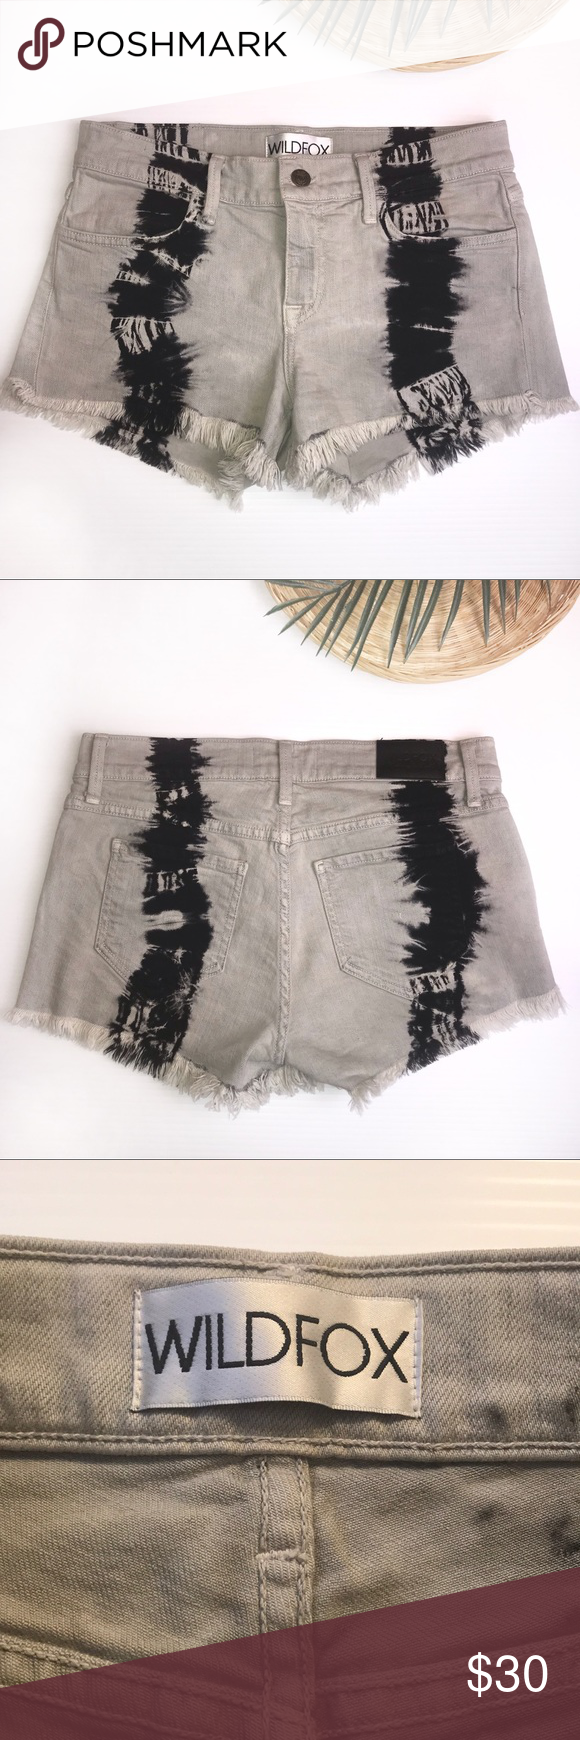 "Wildfox Ruby Tie-Dy Denim Cutoff Shorts Sz 26 Wildfox Ruby Tie-Dye Denim Cutoff Shorts Sz 26  Cutoff frayed bottom hem Gray shorts with black tie-dye streaks  4 pocket detail Stretchy material  98% cotton  2% Spandex   Measurements  Waist 14""  Full length 11"" Inseam 3"" Rise 8""  Comes from a smoke & pet free home! Wildfox Shorts #denimcutoffshorts"